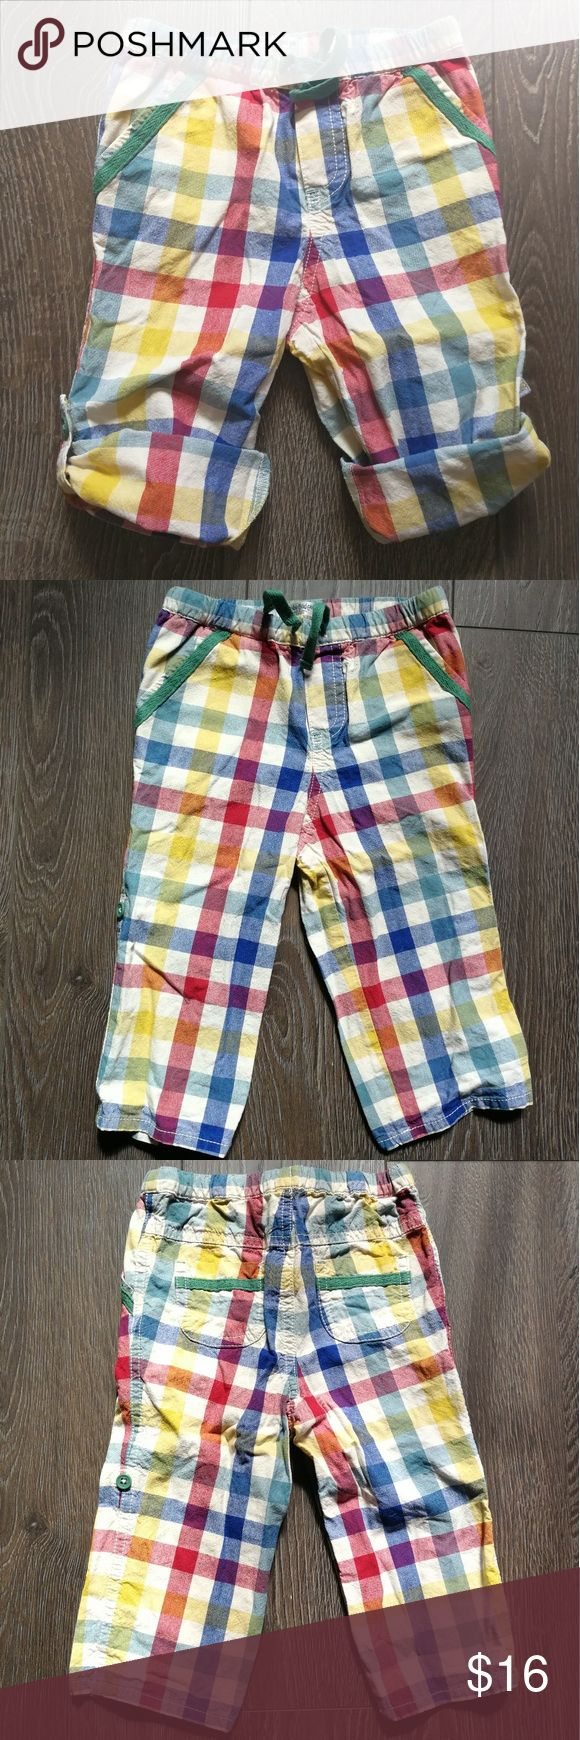 Excellent condition! Mini Baby Boden plaid crop Excellent condition! Super CUTE Baby Boden adjustable slacks to crops. 12-18M. Great for Spring! Freshly laundered and ready to wear! Bundle to SAVE for a discount. Price is Firm. Mini Boden Bottoms Casual